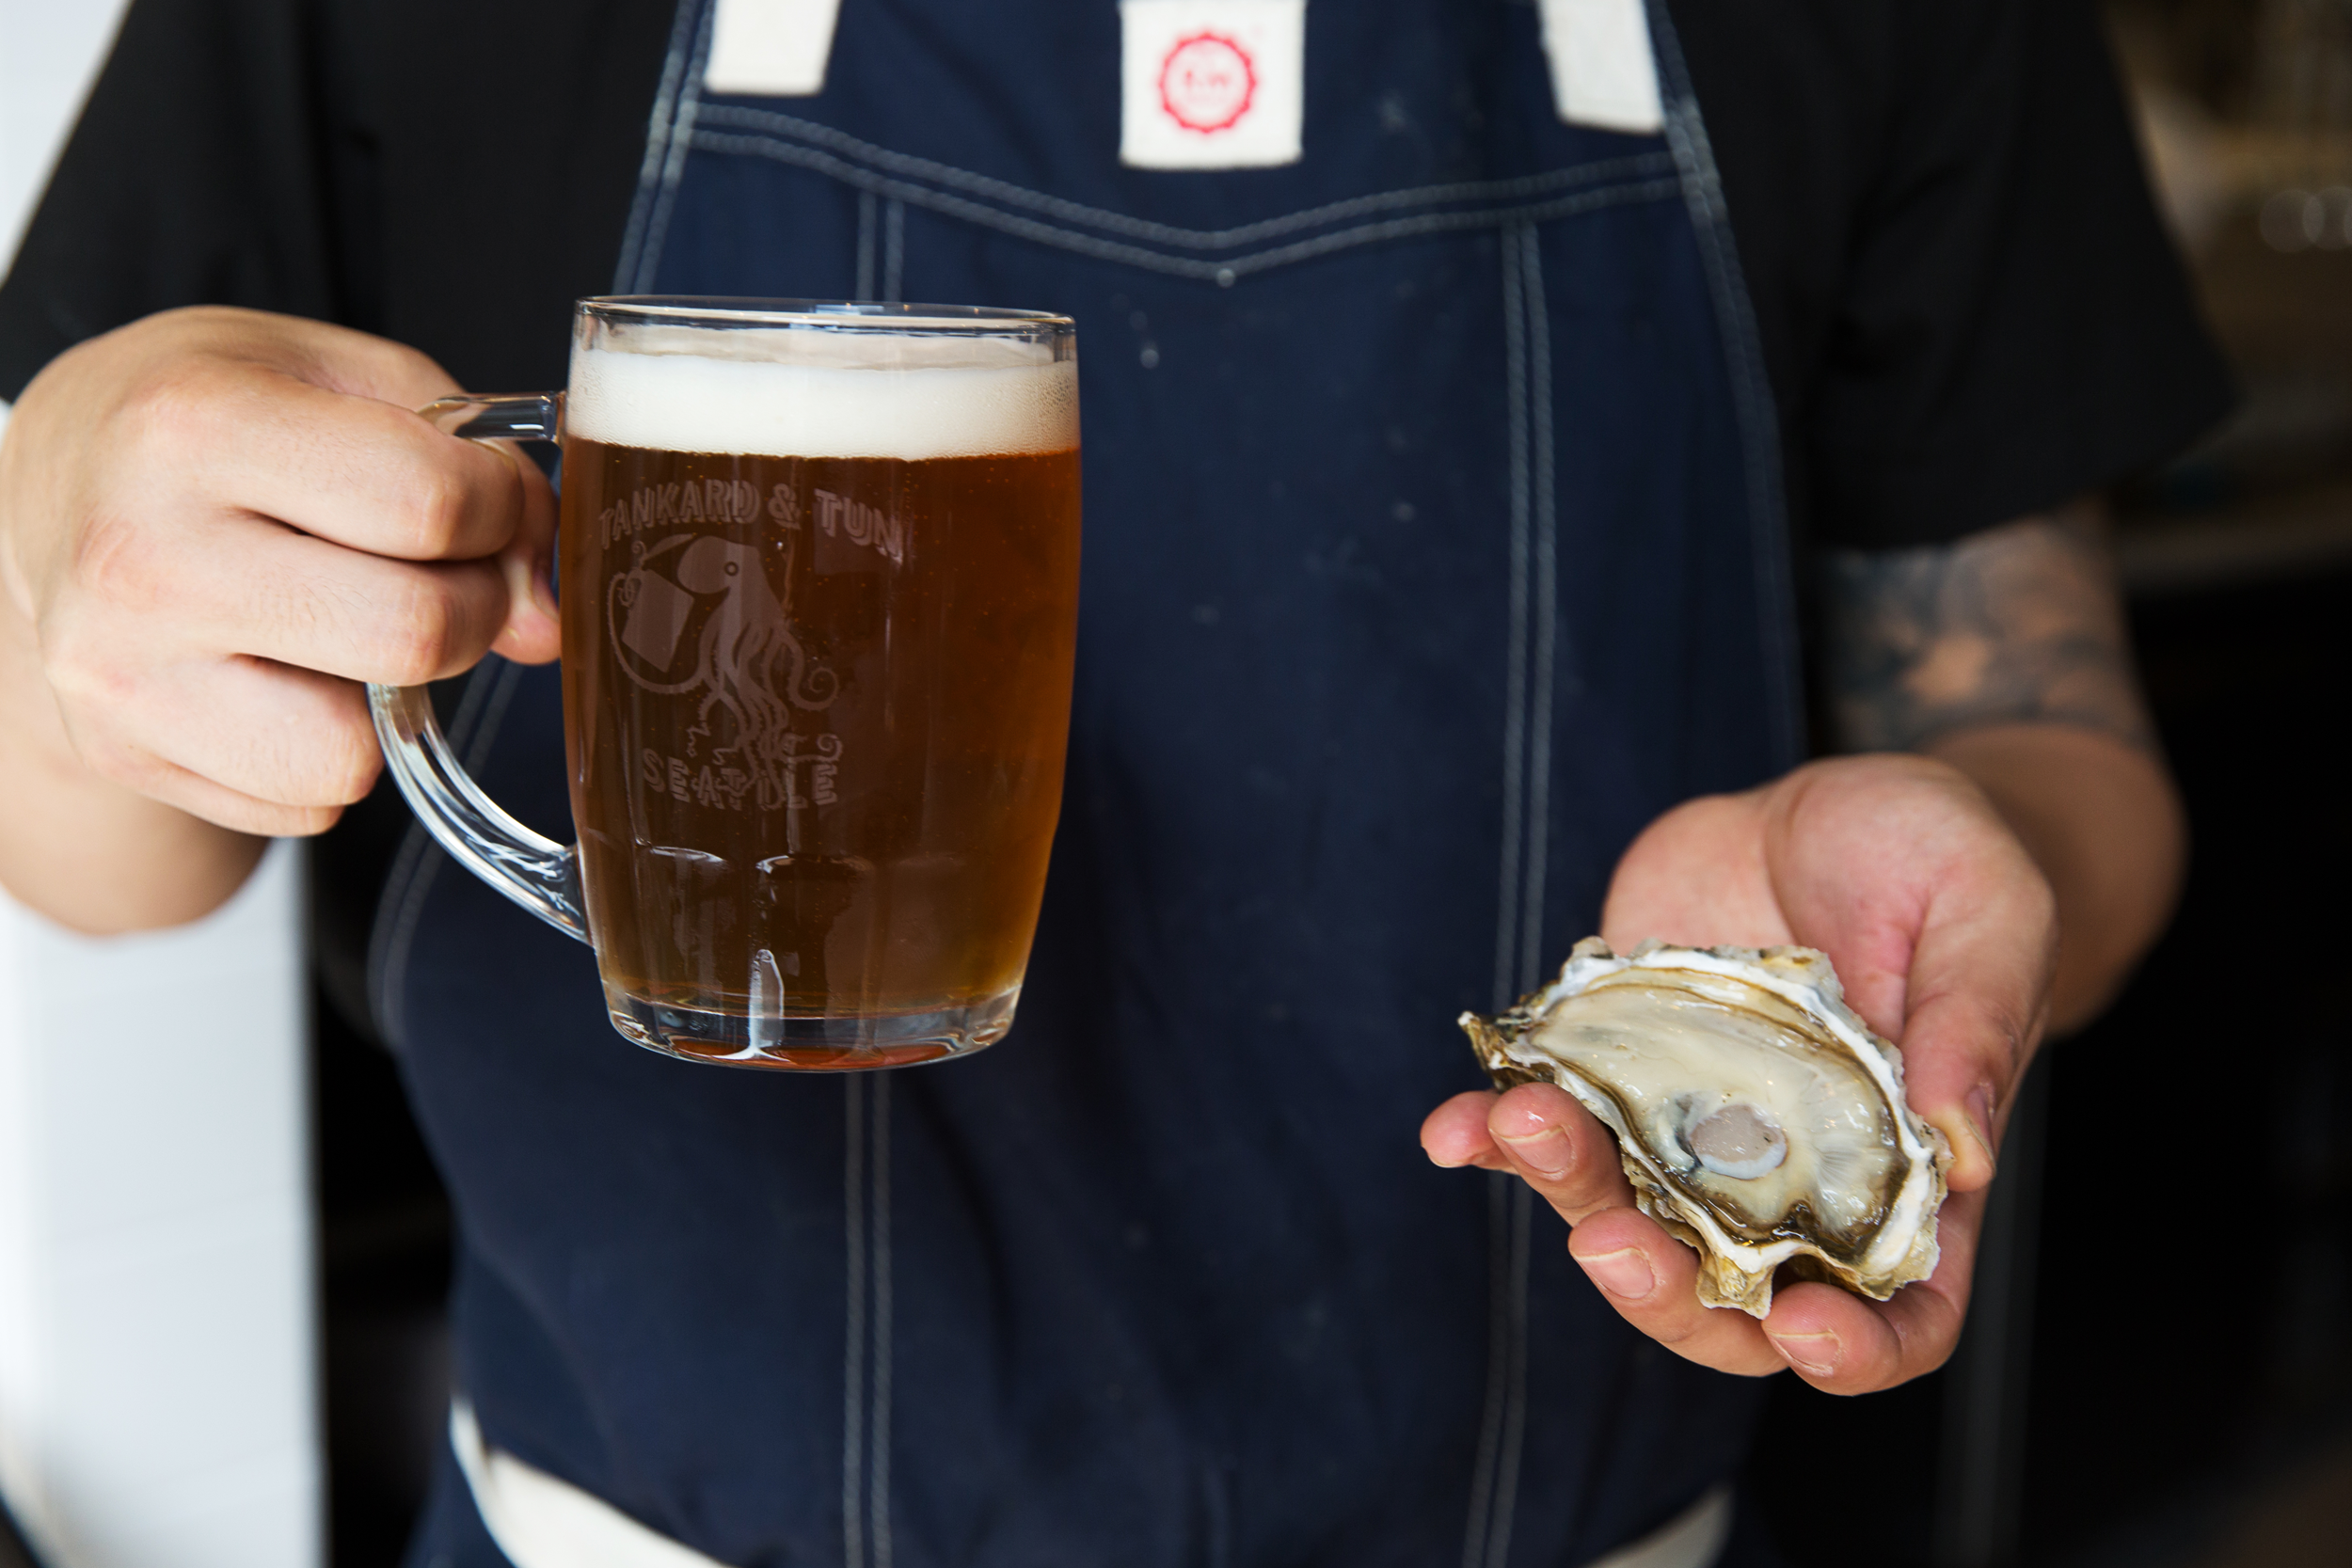 Beer and oyster in hand